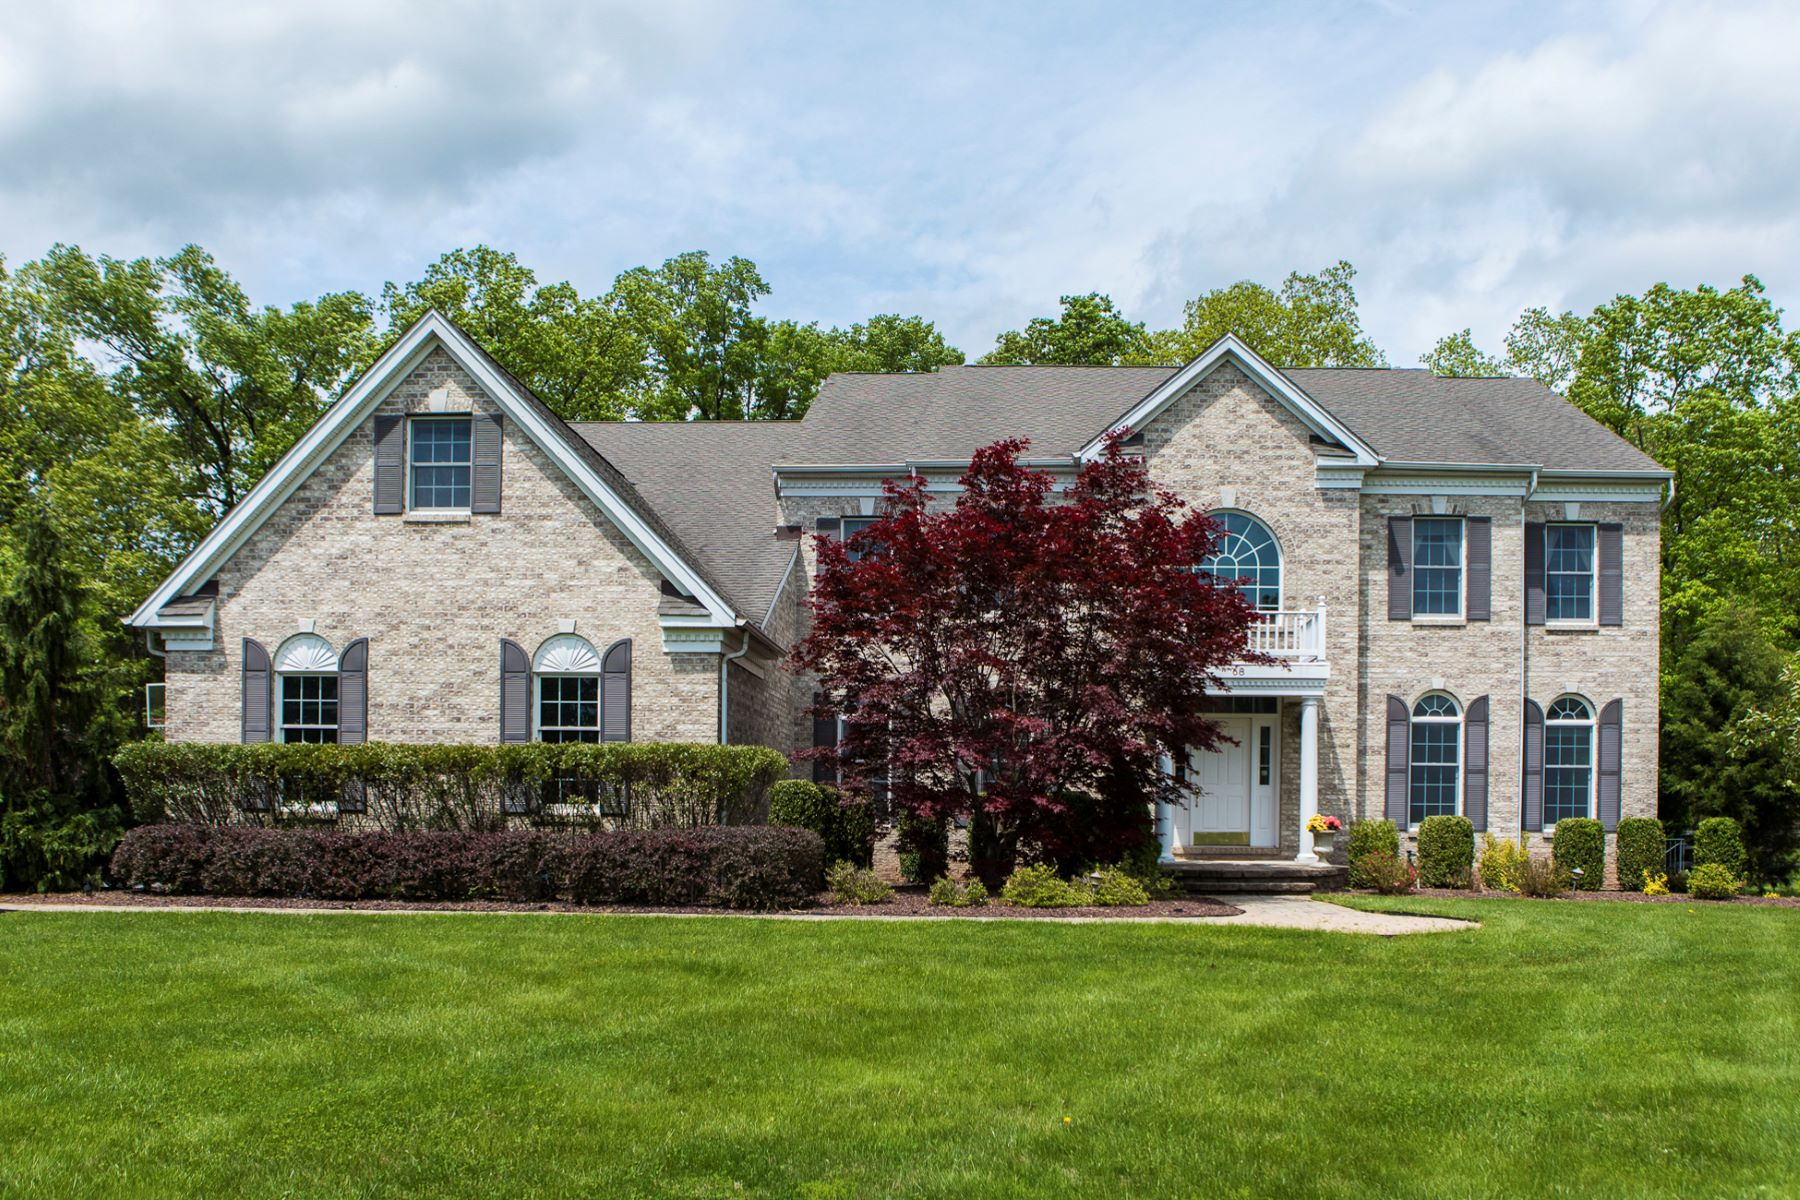 Single Family Homes for Sale at Room For Everyone With Five En Suite Bedrooms 68 Fox Chase Lane Belle Mead, New Jersey 08502 United States